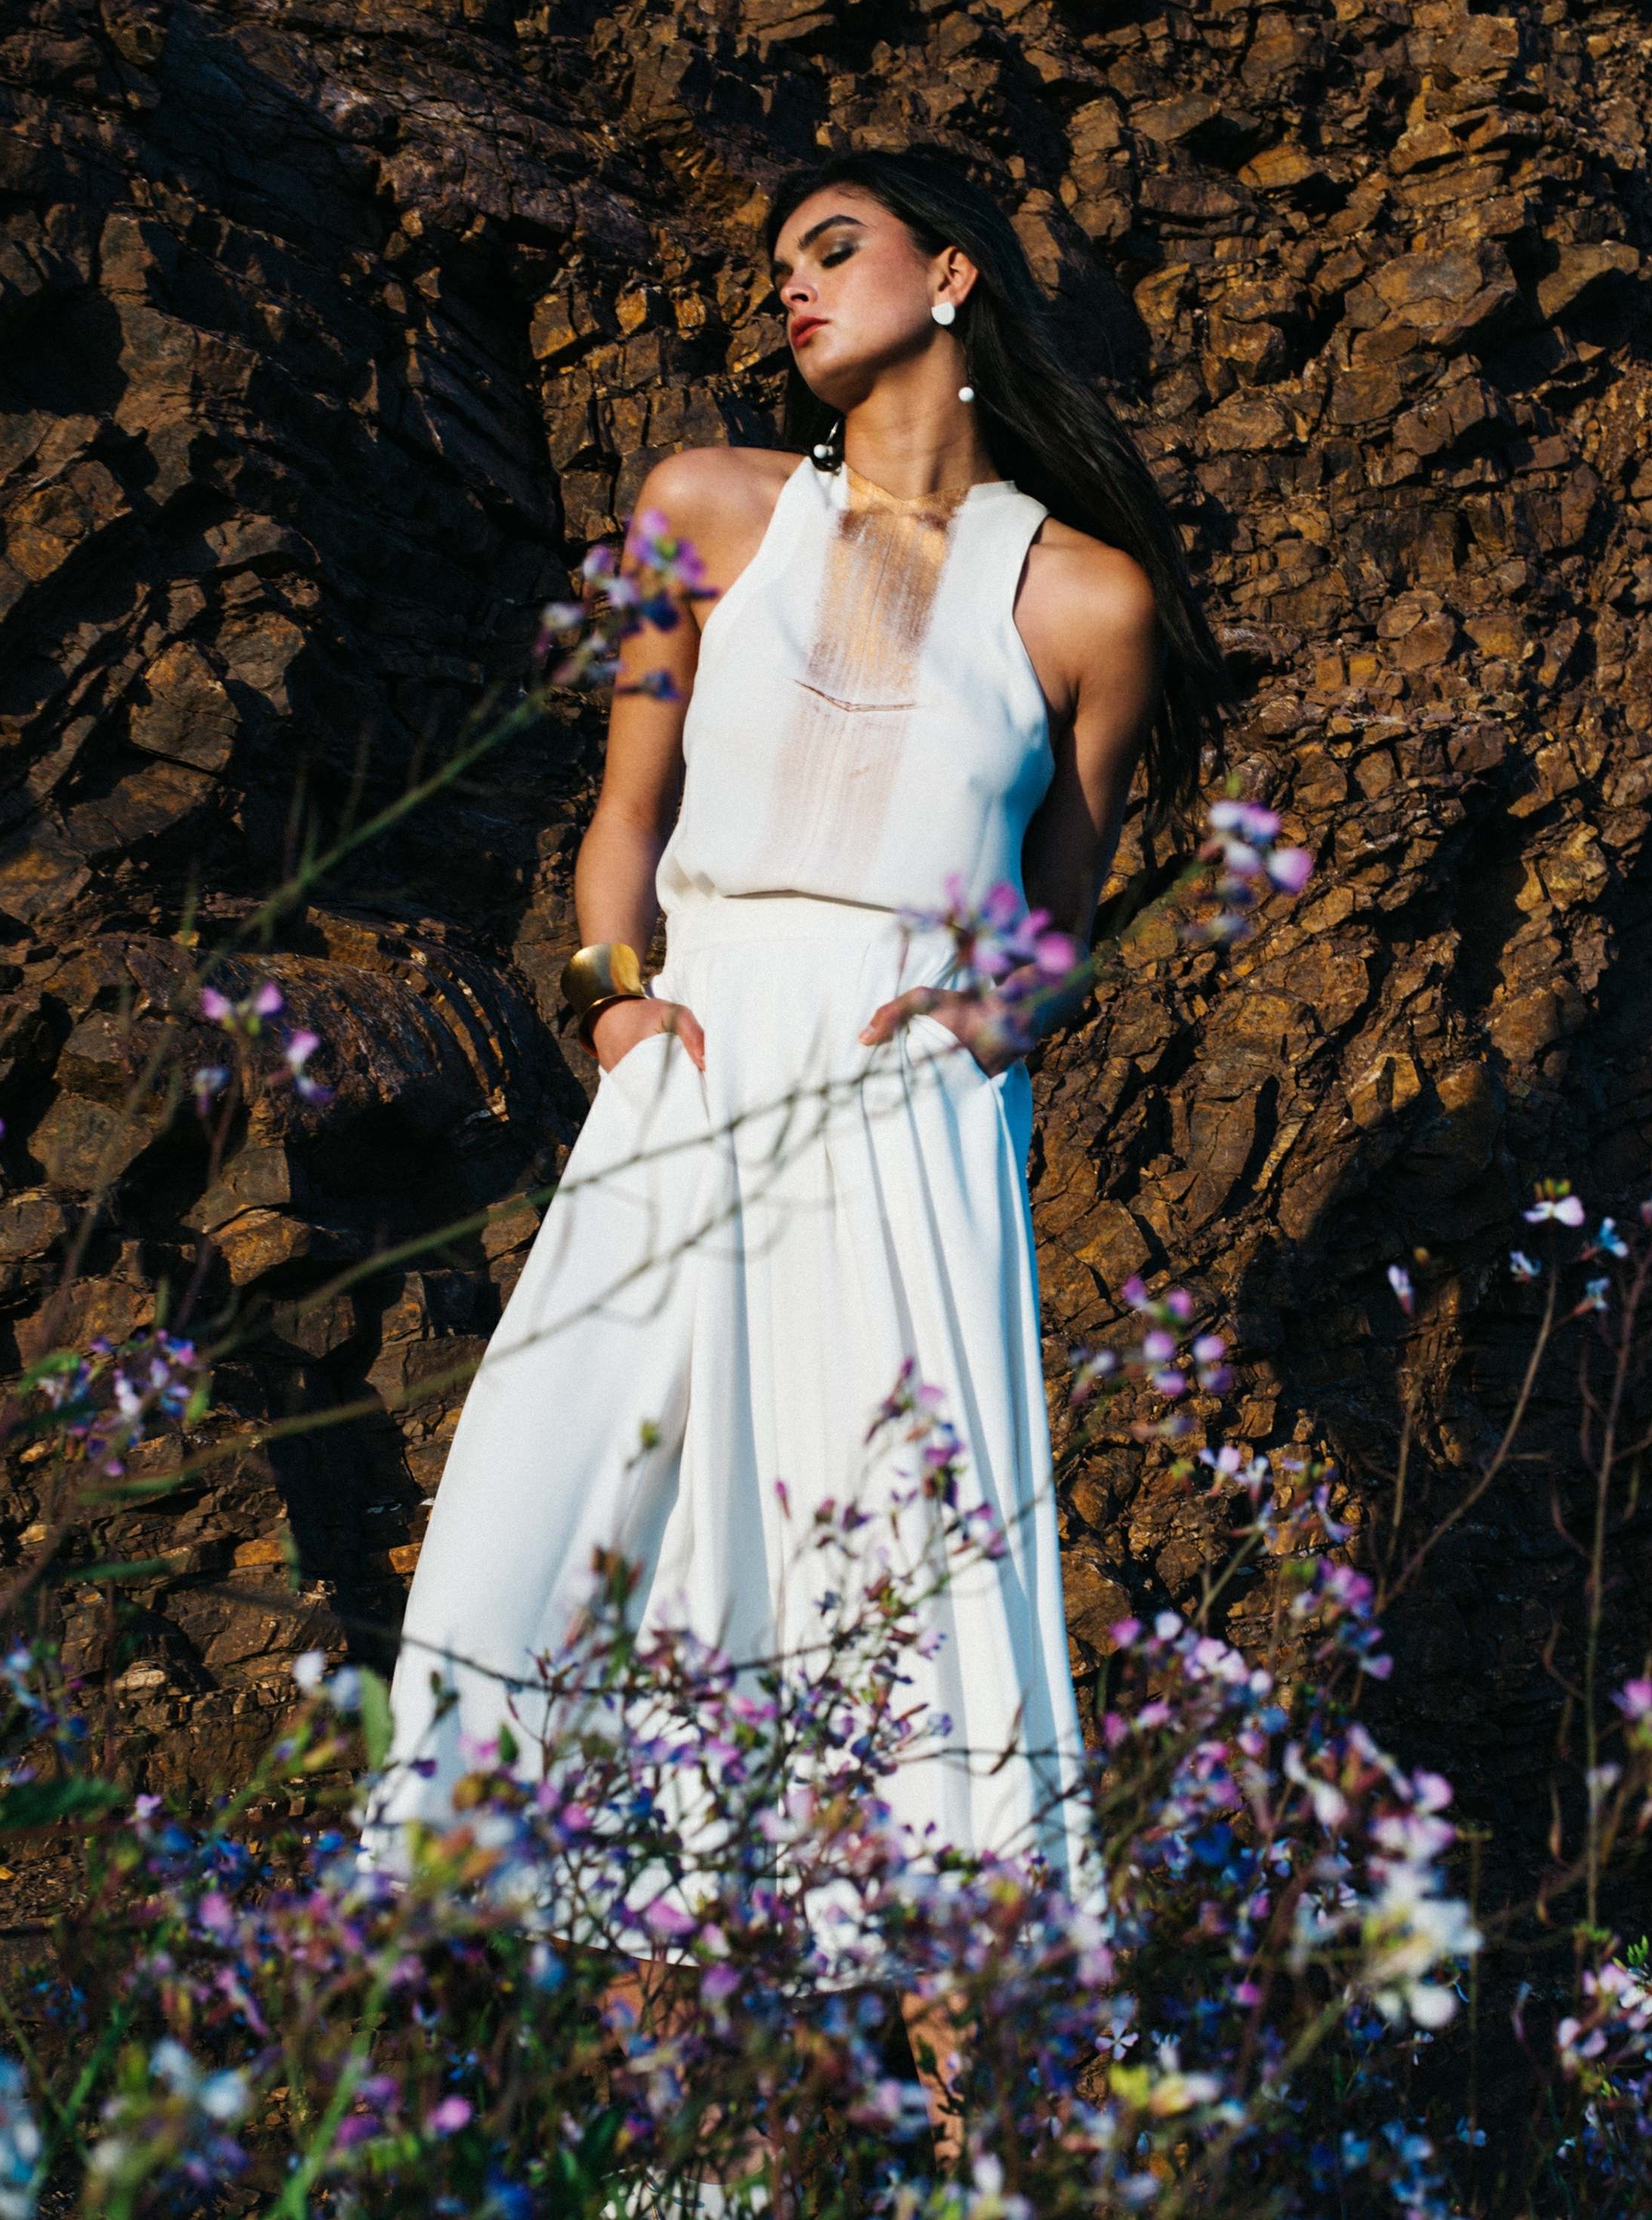 Madison Flowers of Stars Models by Lionel Reyes for Florum Fashion Magazine - Sustainable Project San Francisco California - Stephanie Stimmler Venita Stylist - Cassandra McClure08 2.jpg